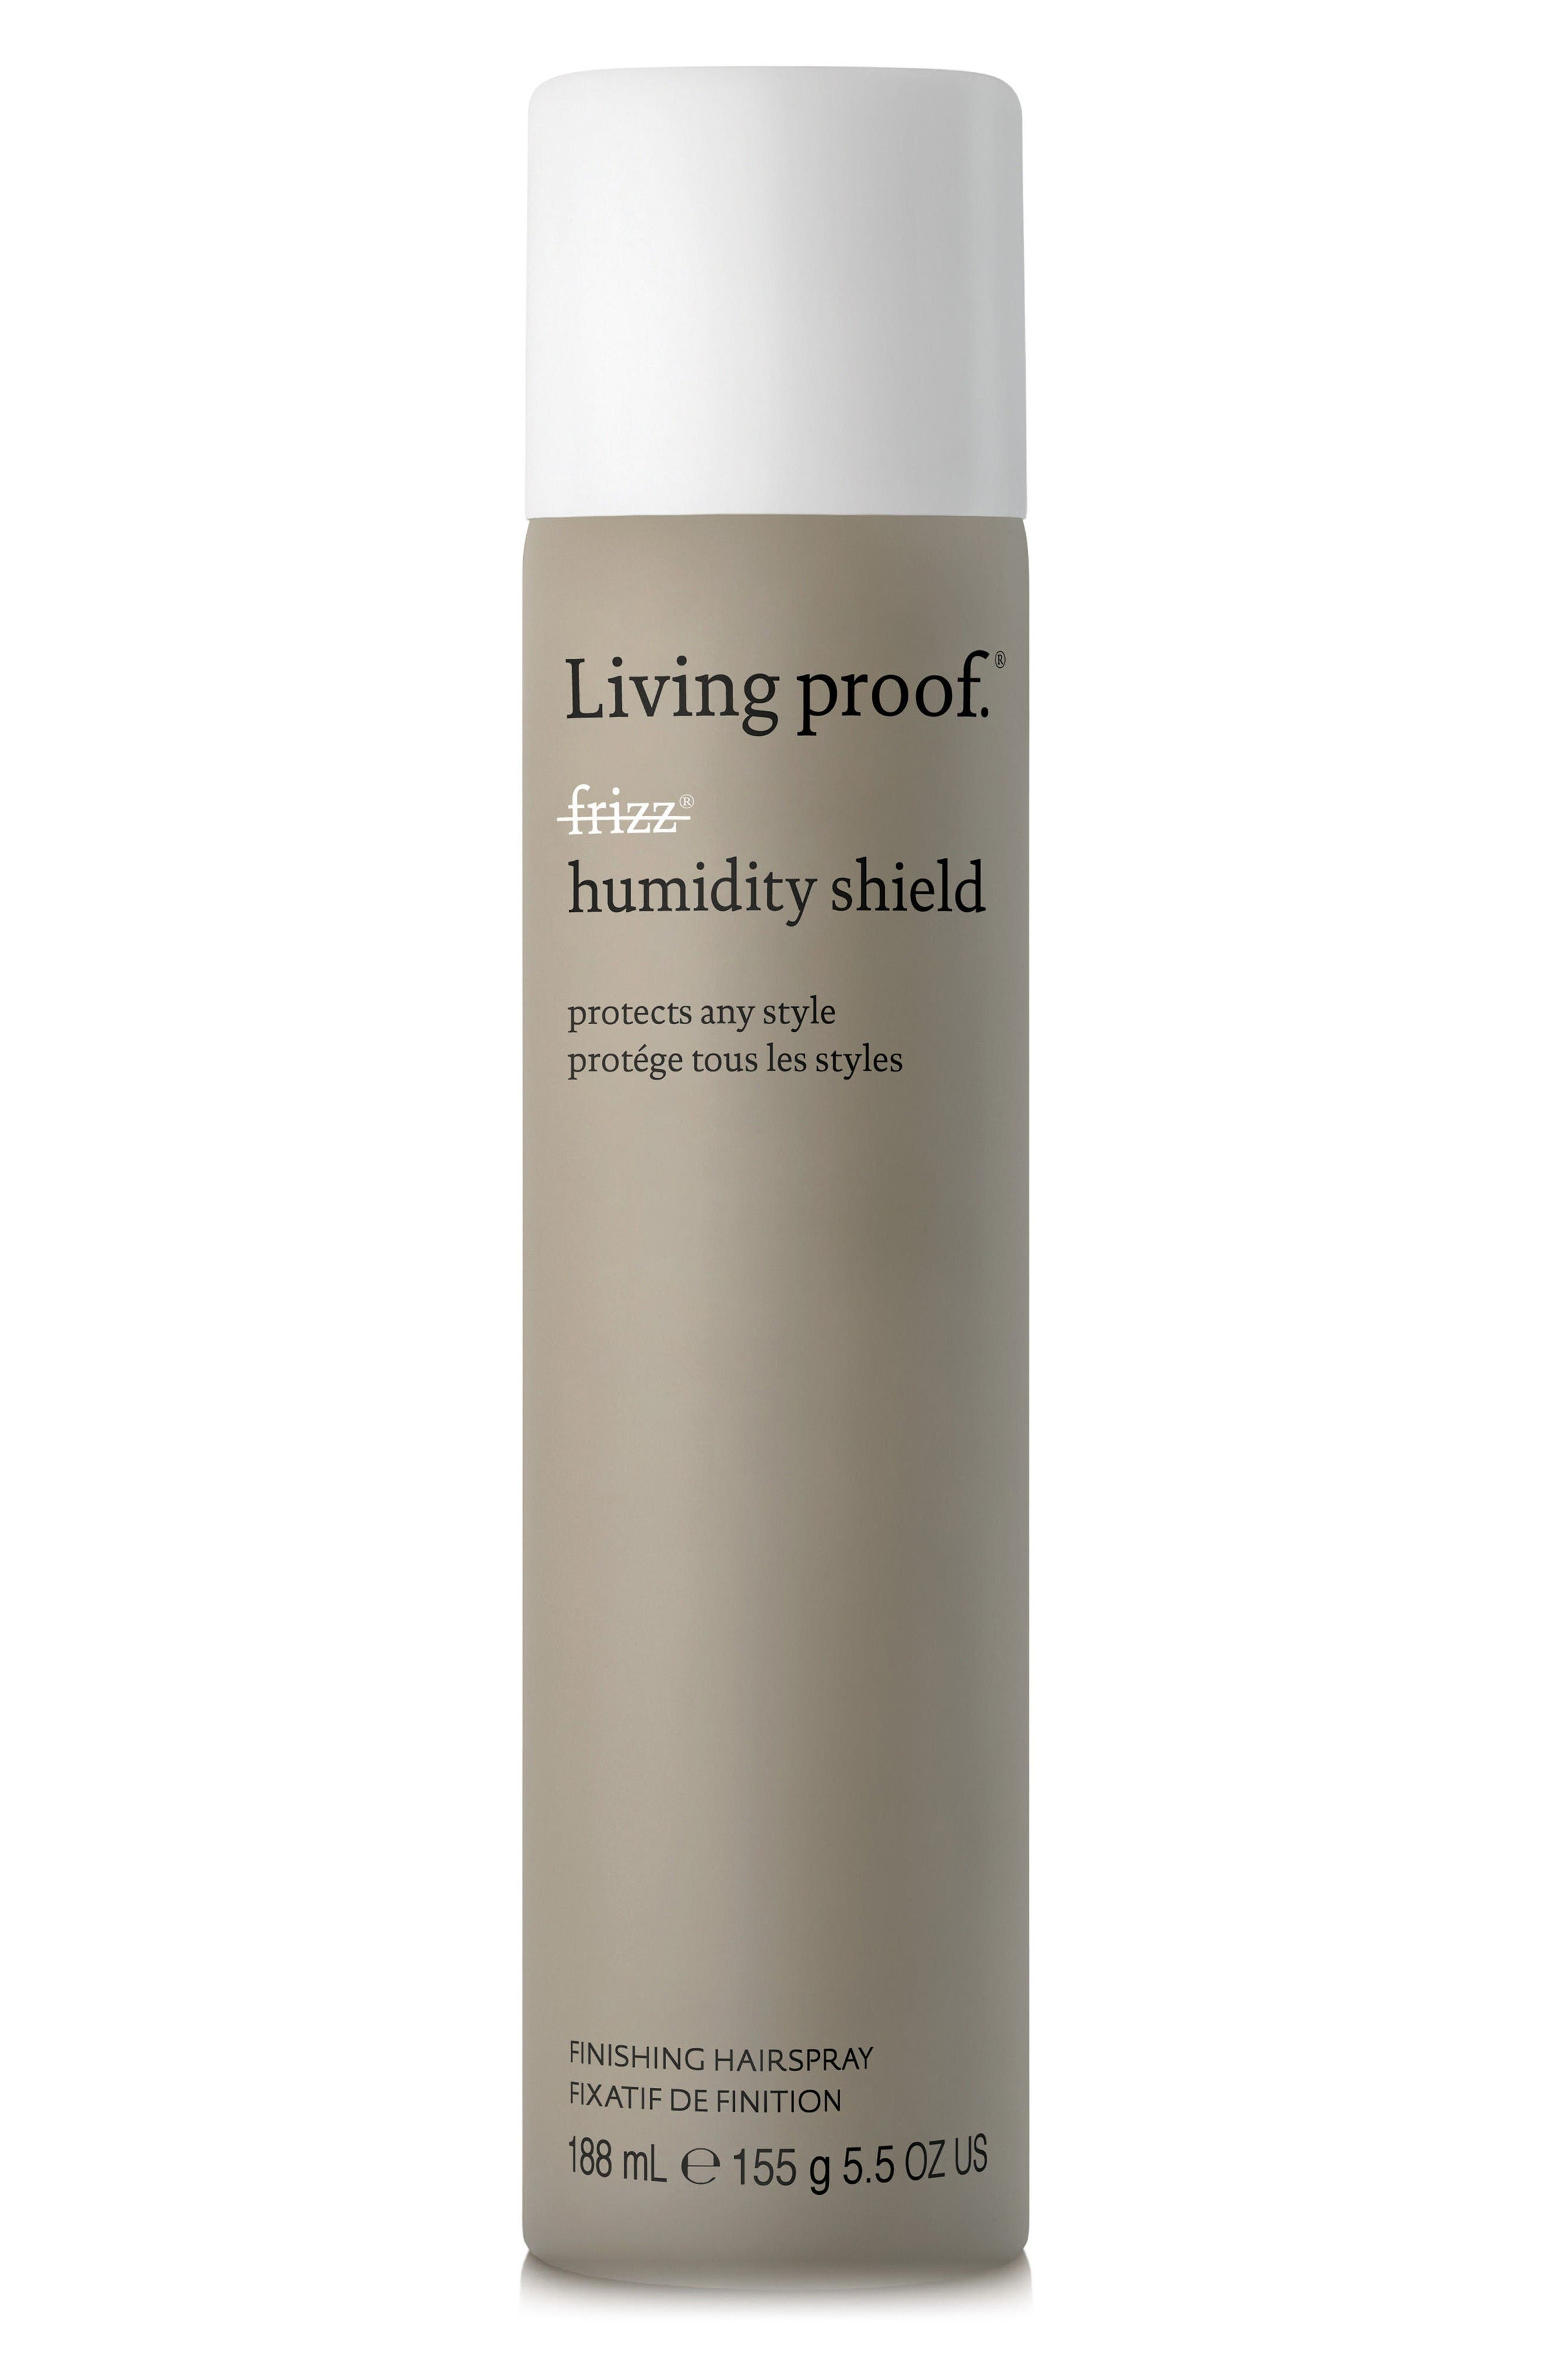 Alternate Image 1 Selected - Living proof® No Frizz Humidity Shield